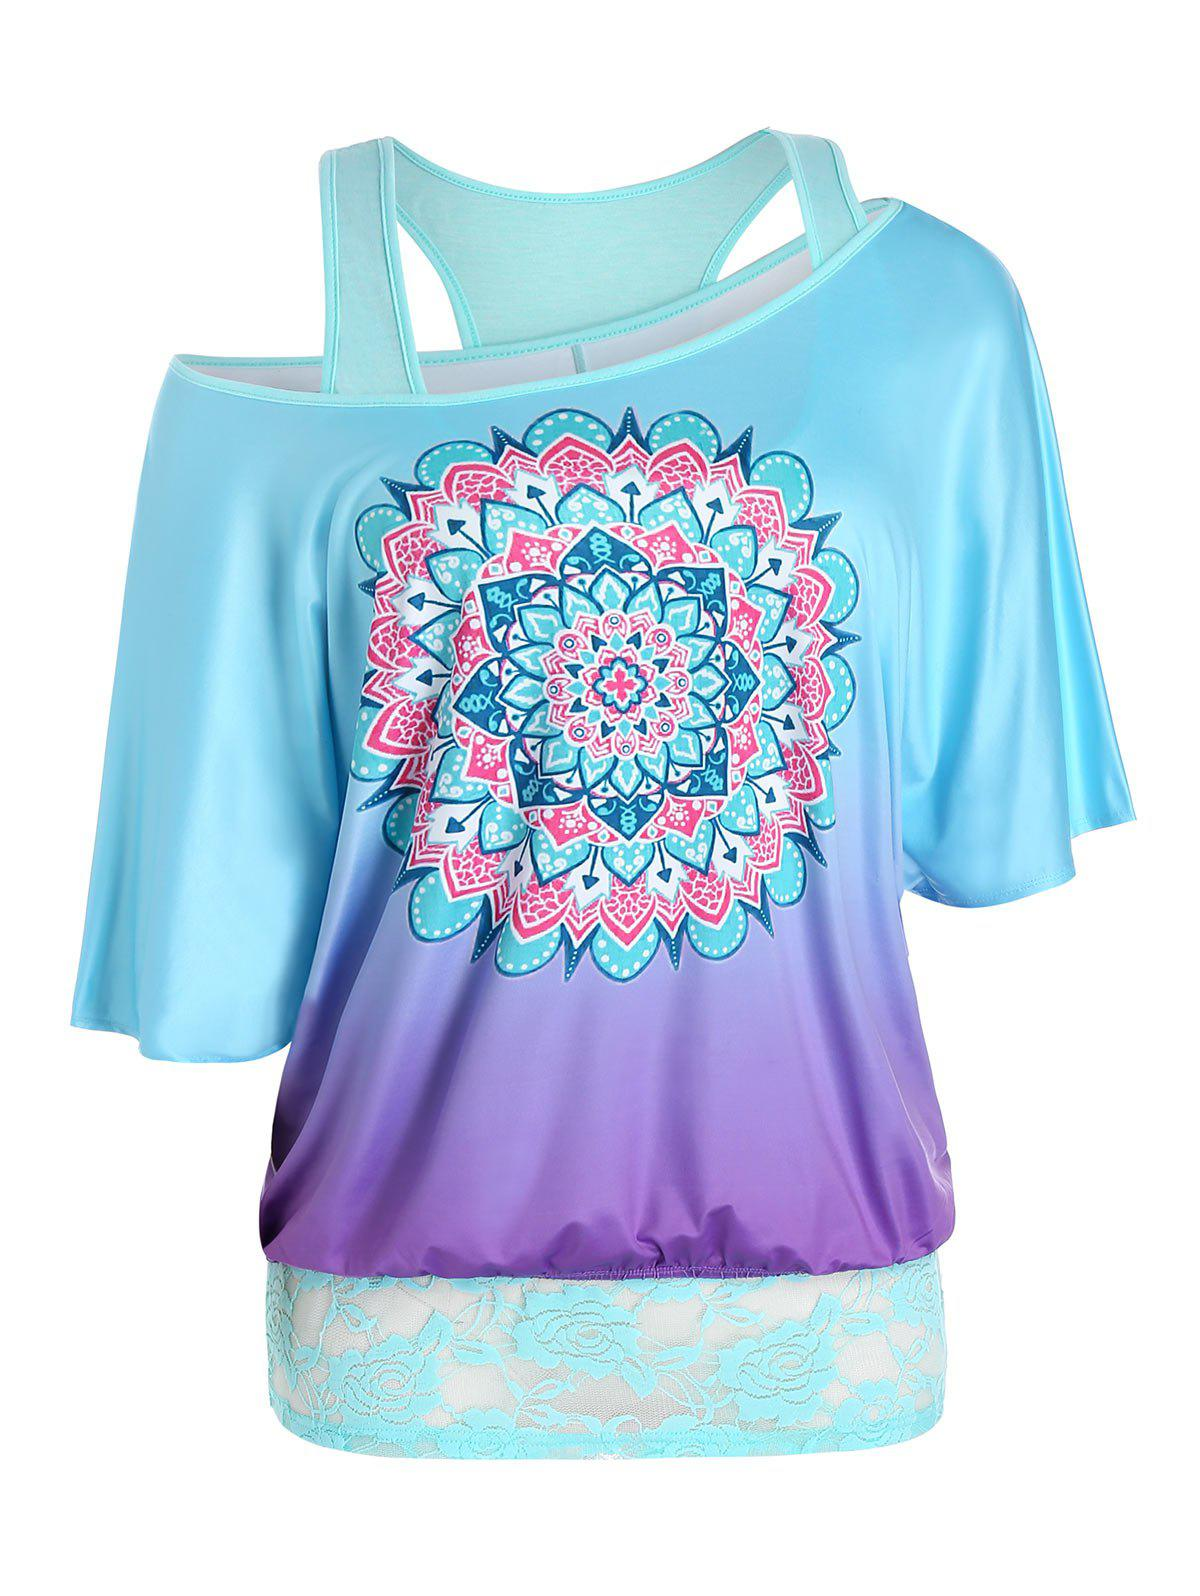 Plus Size Skew Neck Bohemian Print Ombre Tee and Tank Top Set - MEDIUM TURQUOISE 3X